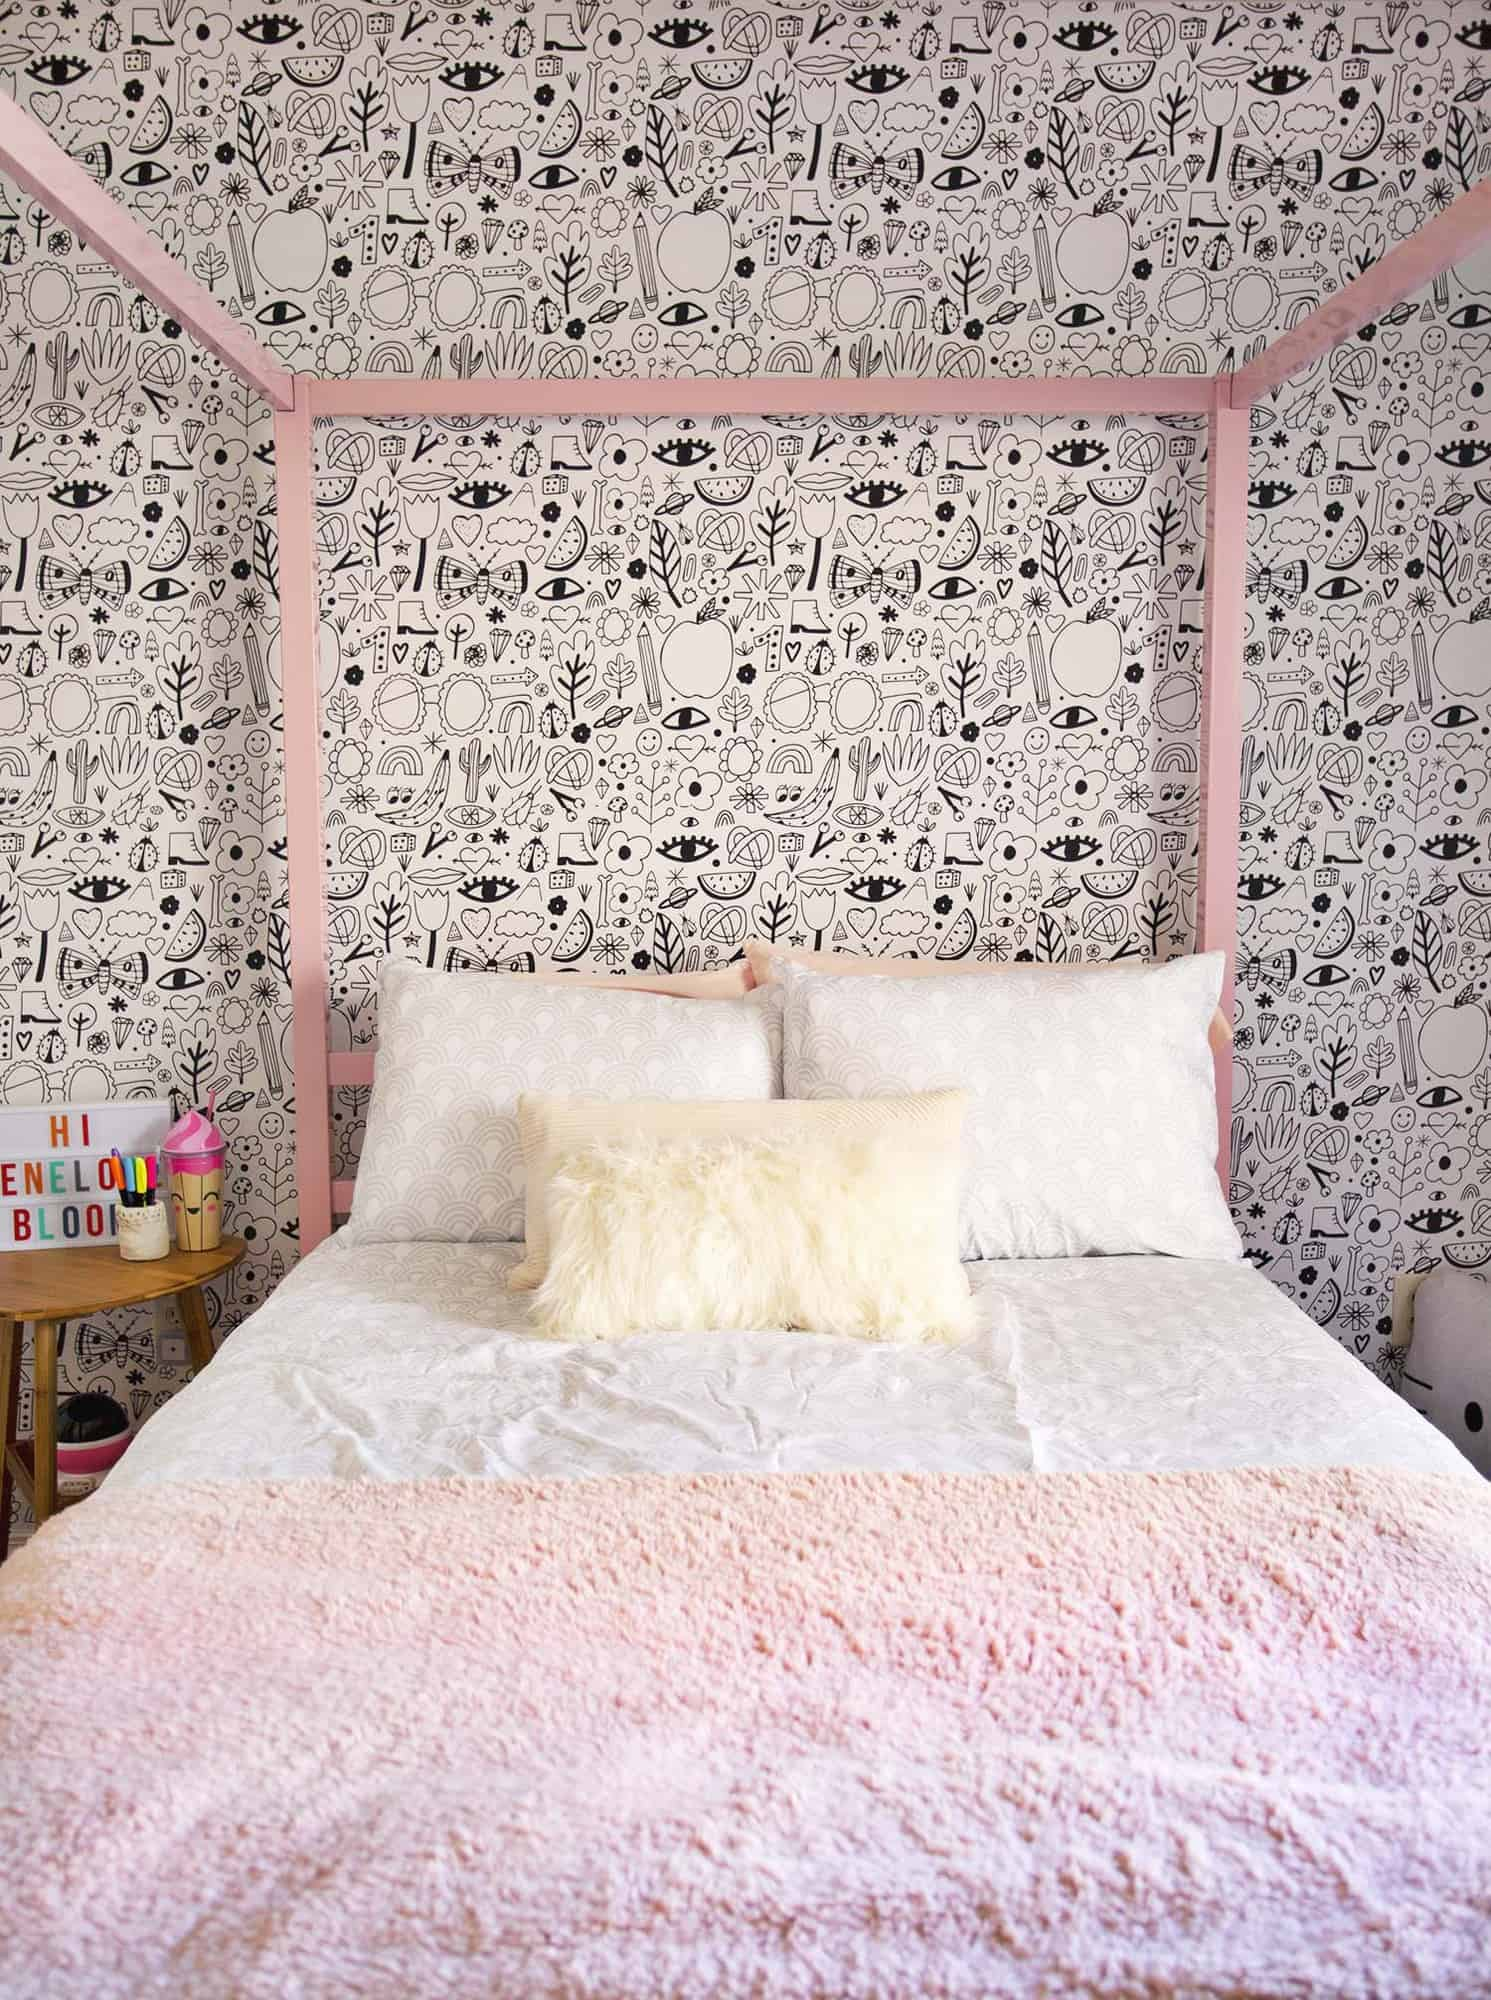 Our Niece's Bedroom Makeover